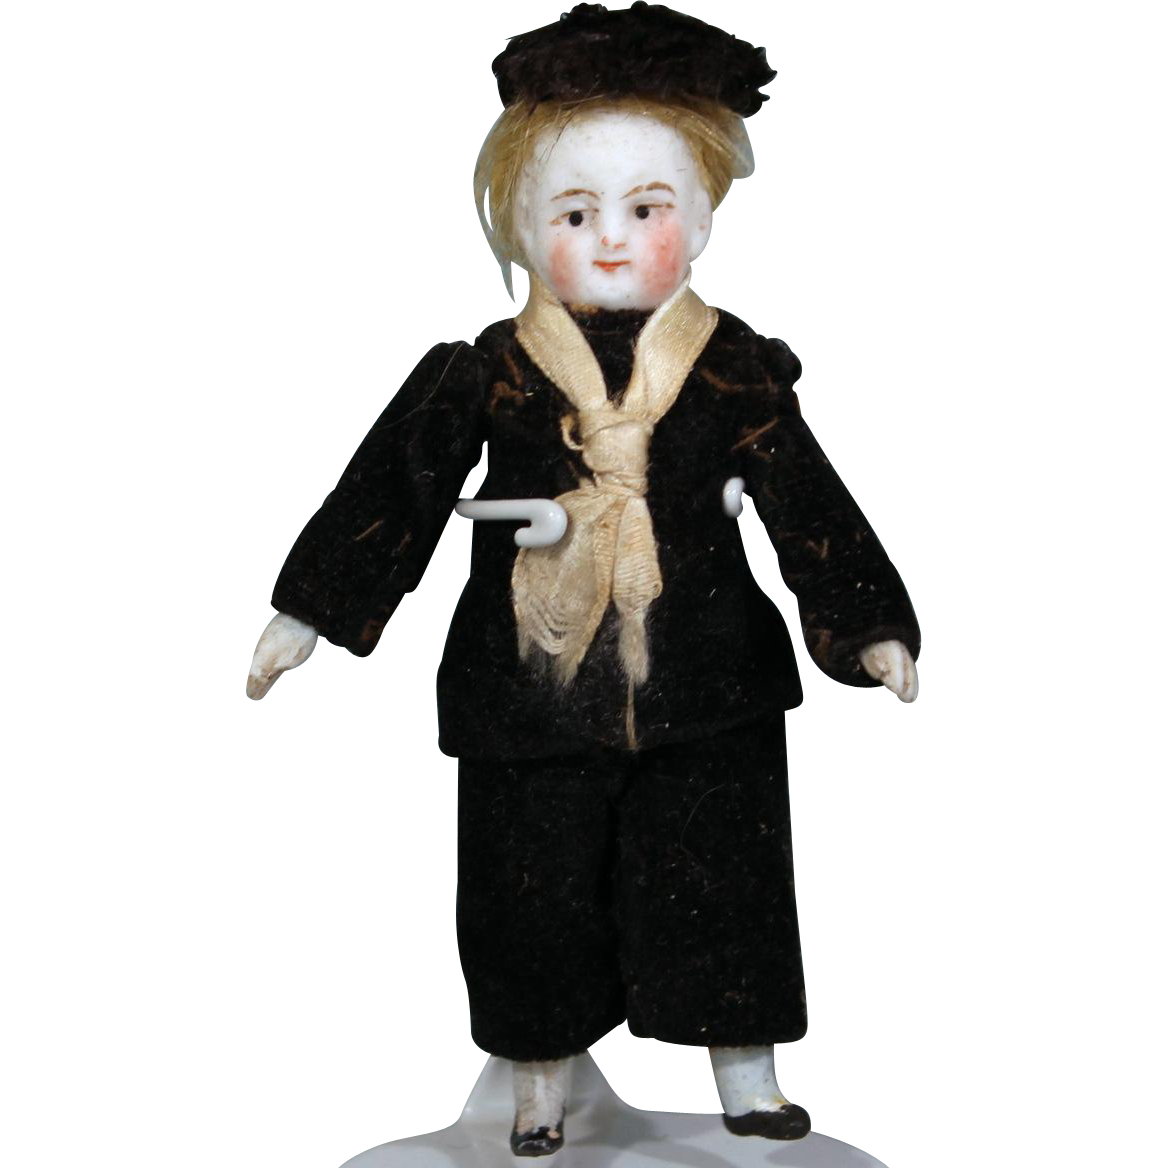 All Bisque Dollhouse doll in Original Costume, 3.25 inches